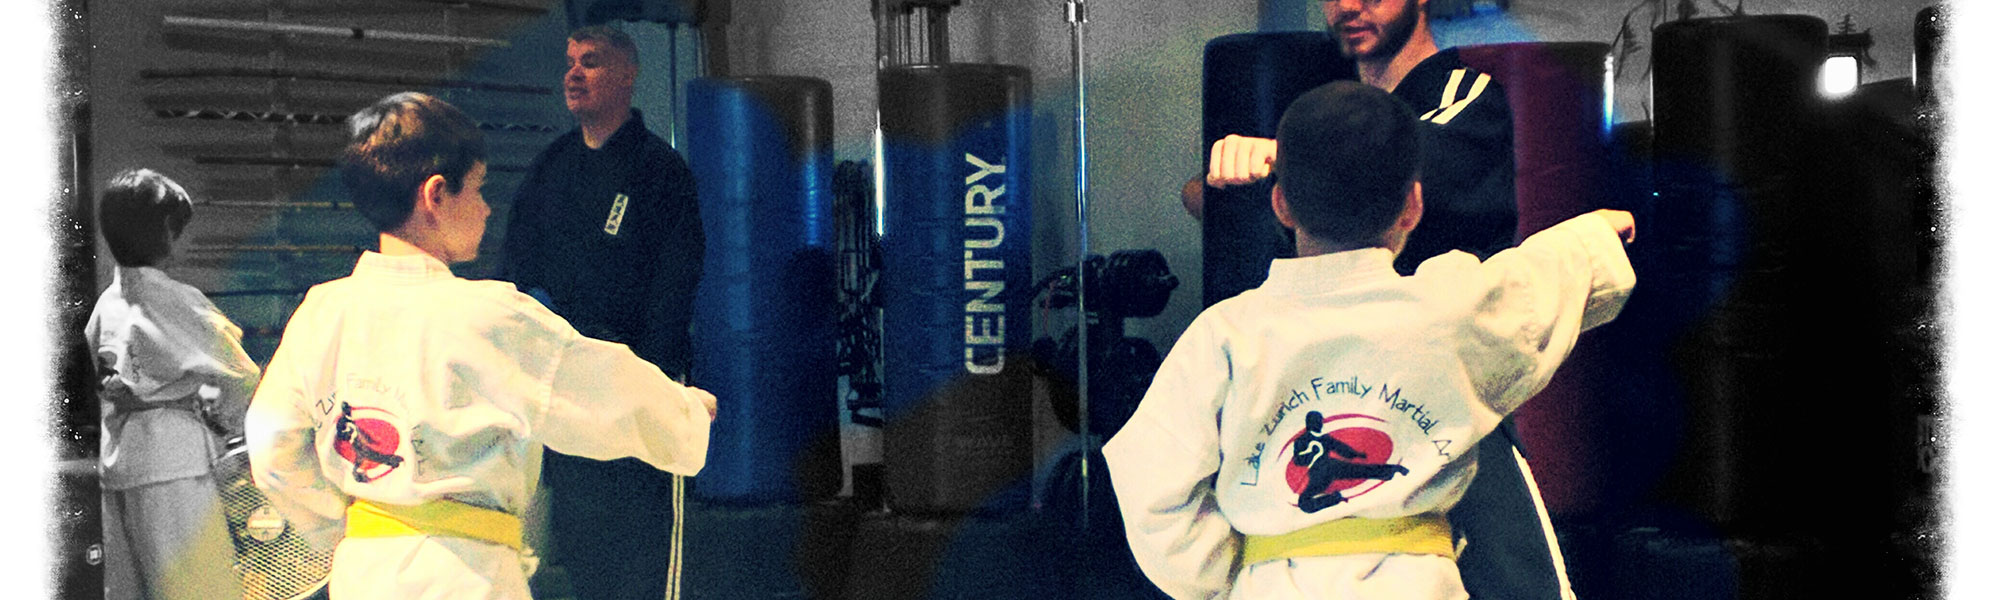 Lake Zurich Family Martial Arts